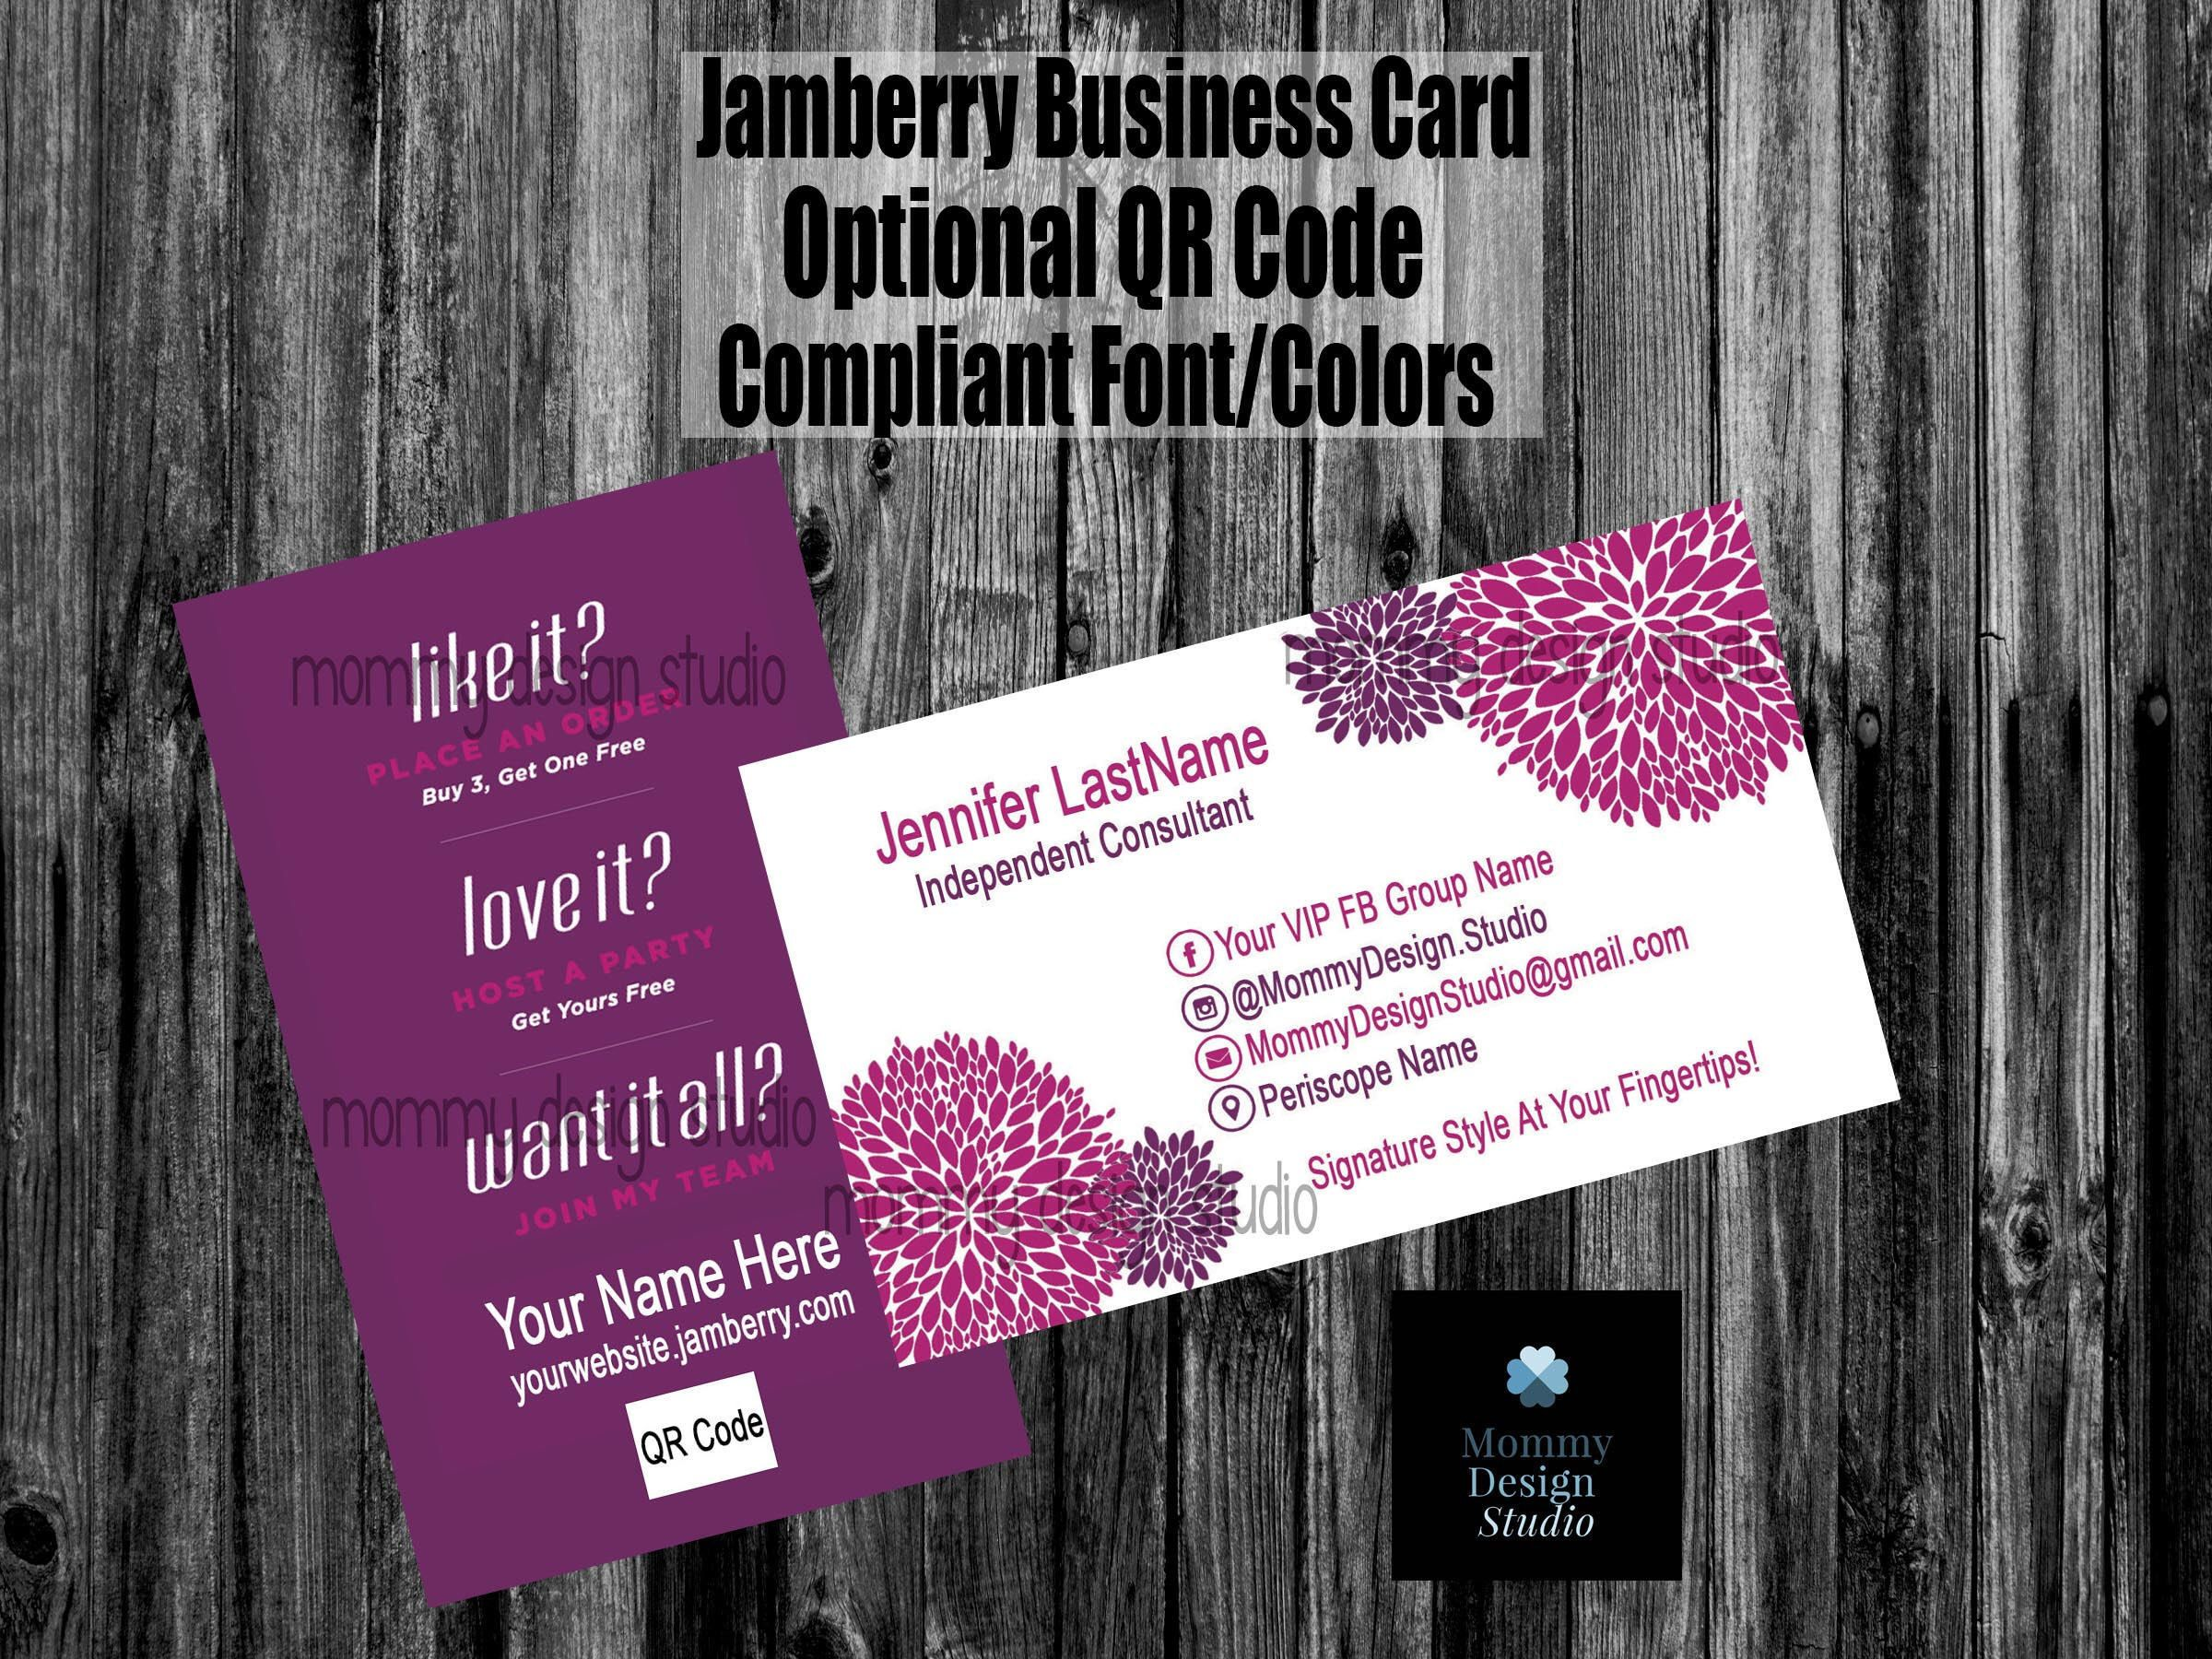 19 best jamberry business cards images on pinterest